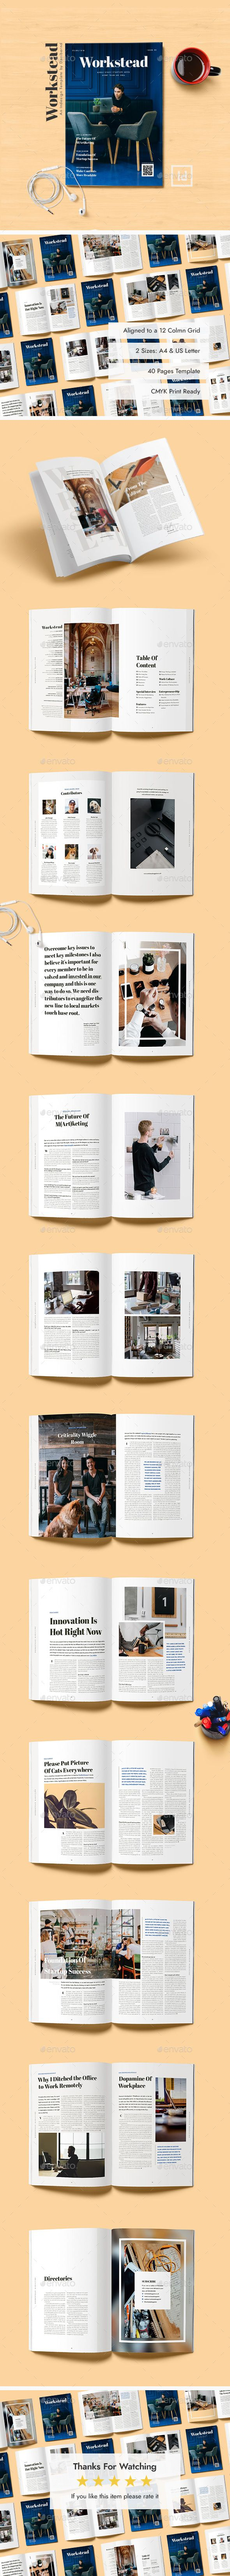 Workstead Magazine - 40 Pages Indesign Template   Indesign templates ...